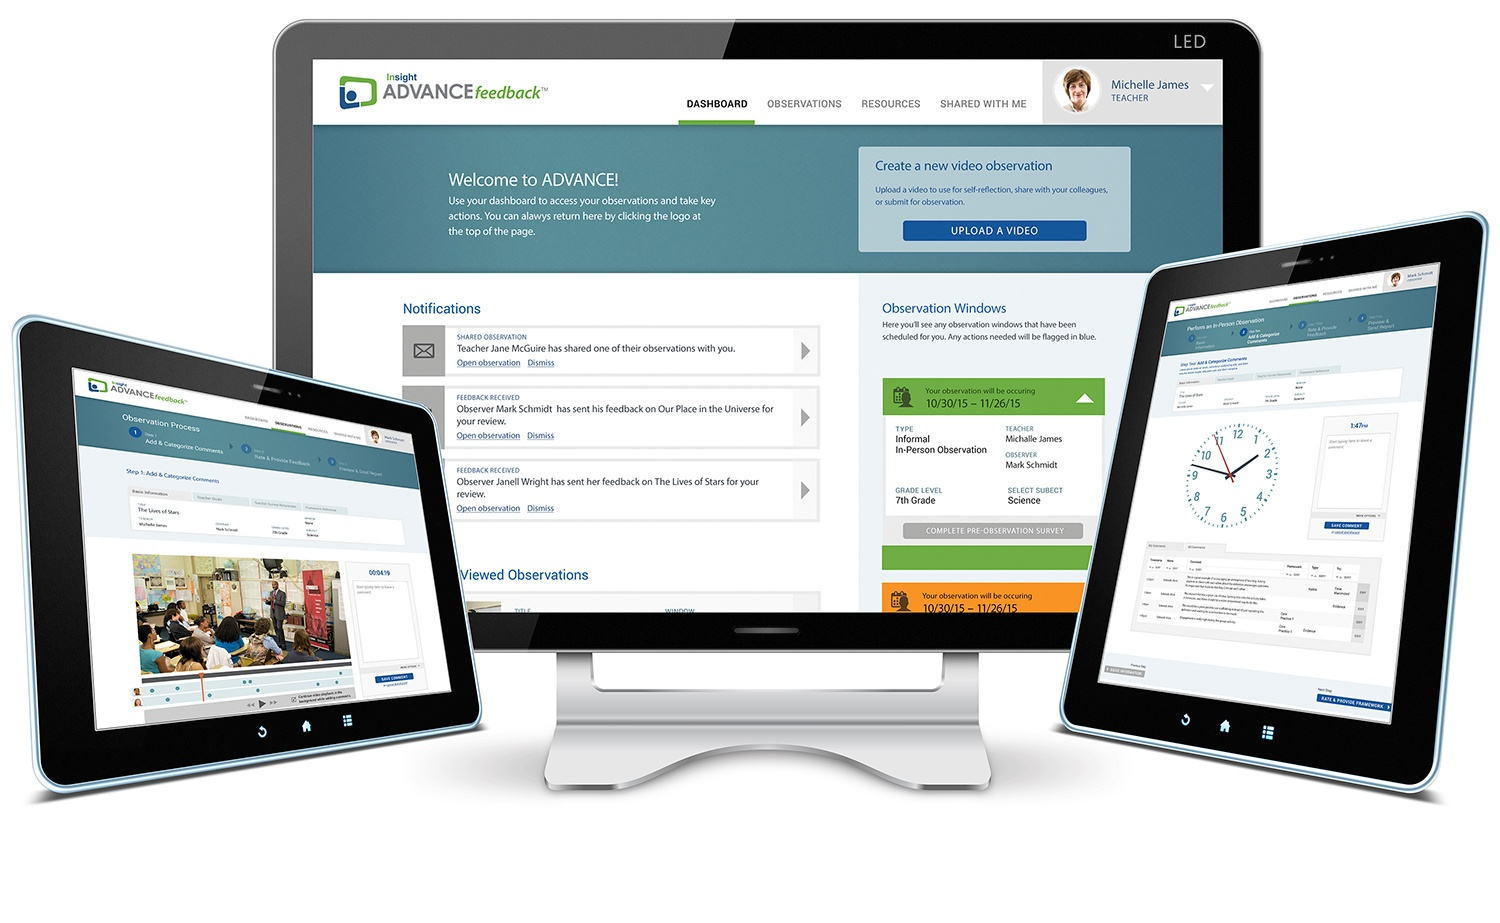 ADVANCEfeedback powered by Insight Education Group